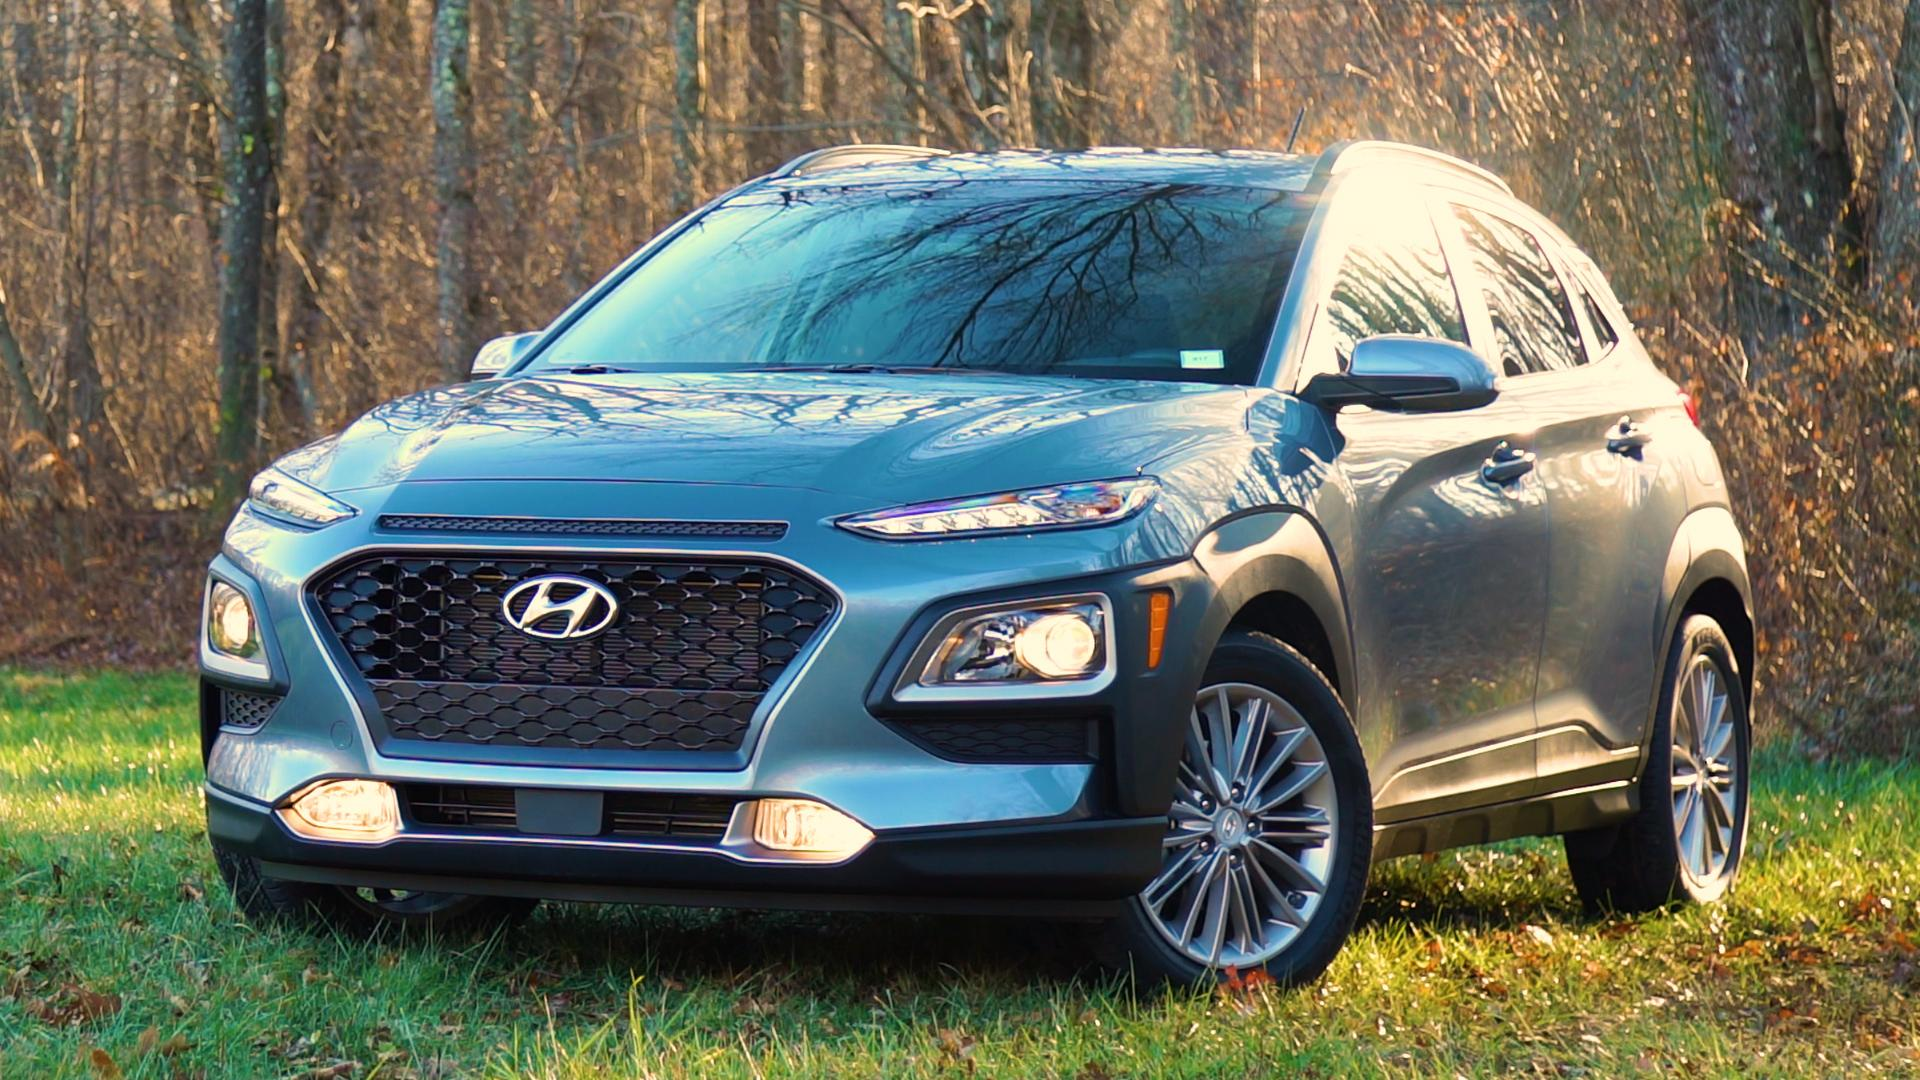 2018 hyundai kona first drive review consumer reports rh consumerreports org 2013 SUVs with Transmission Manual 2017 SUVs with Transmission Manual